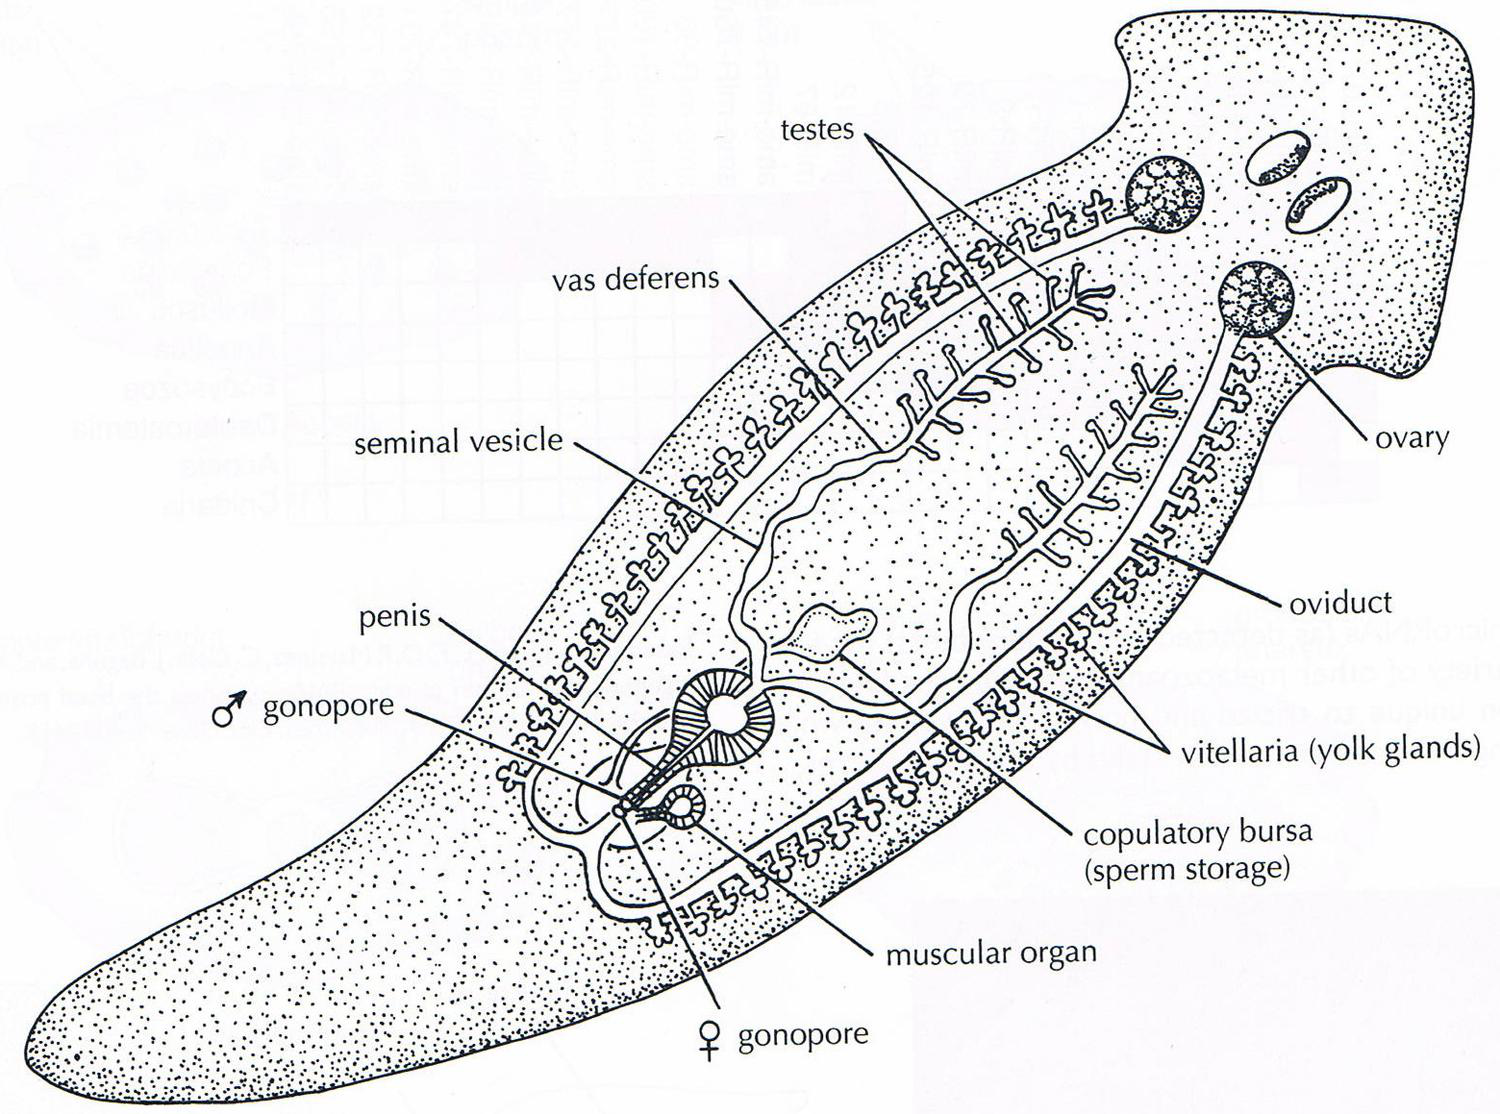 flatworms and roundworms (lesson 0370) - TQA explorer